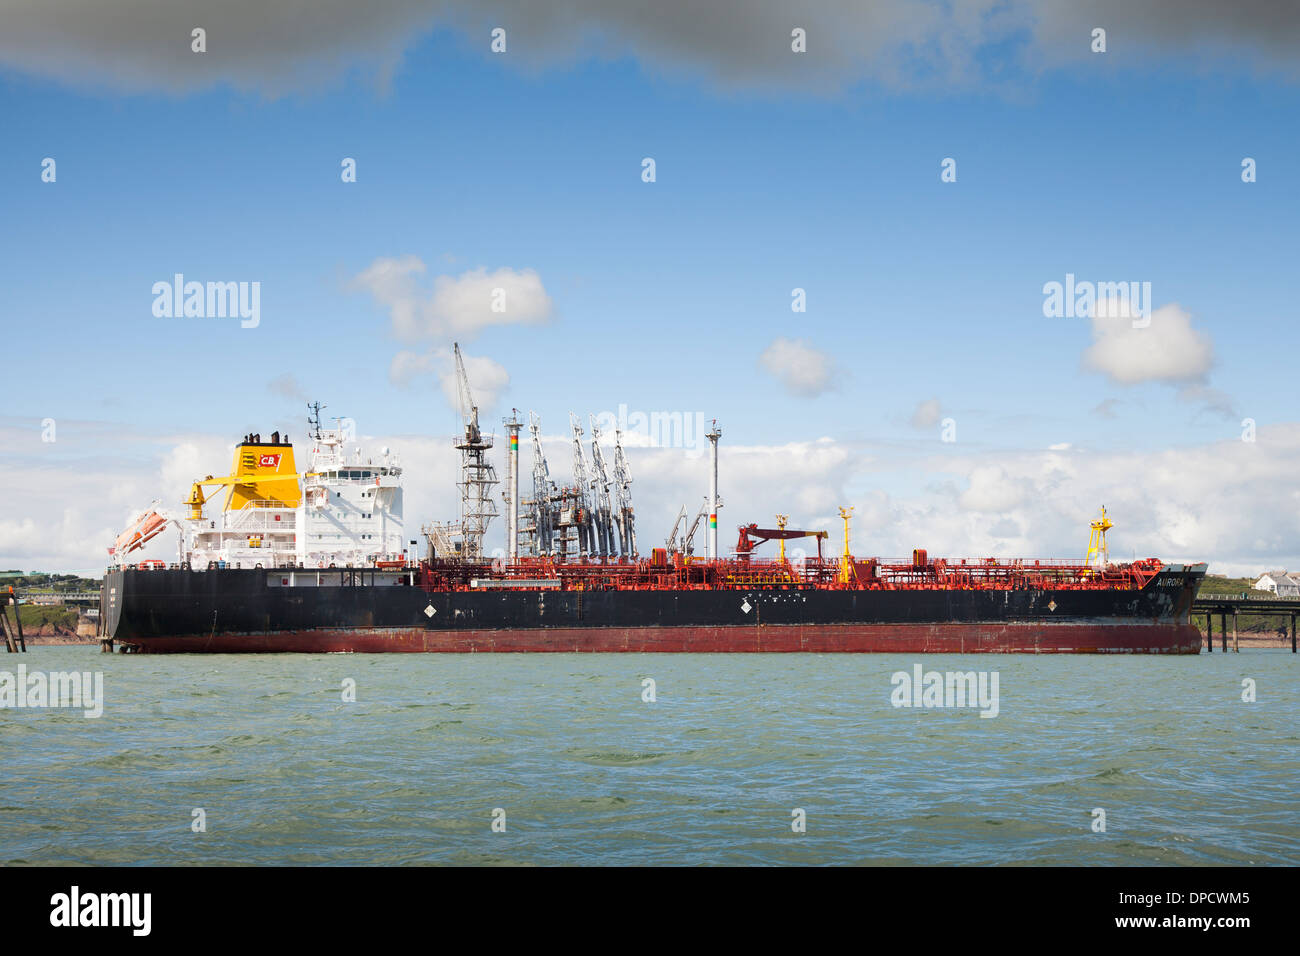 Tanker moored at Milford Haven Oil refinery Stock Photo